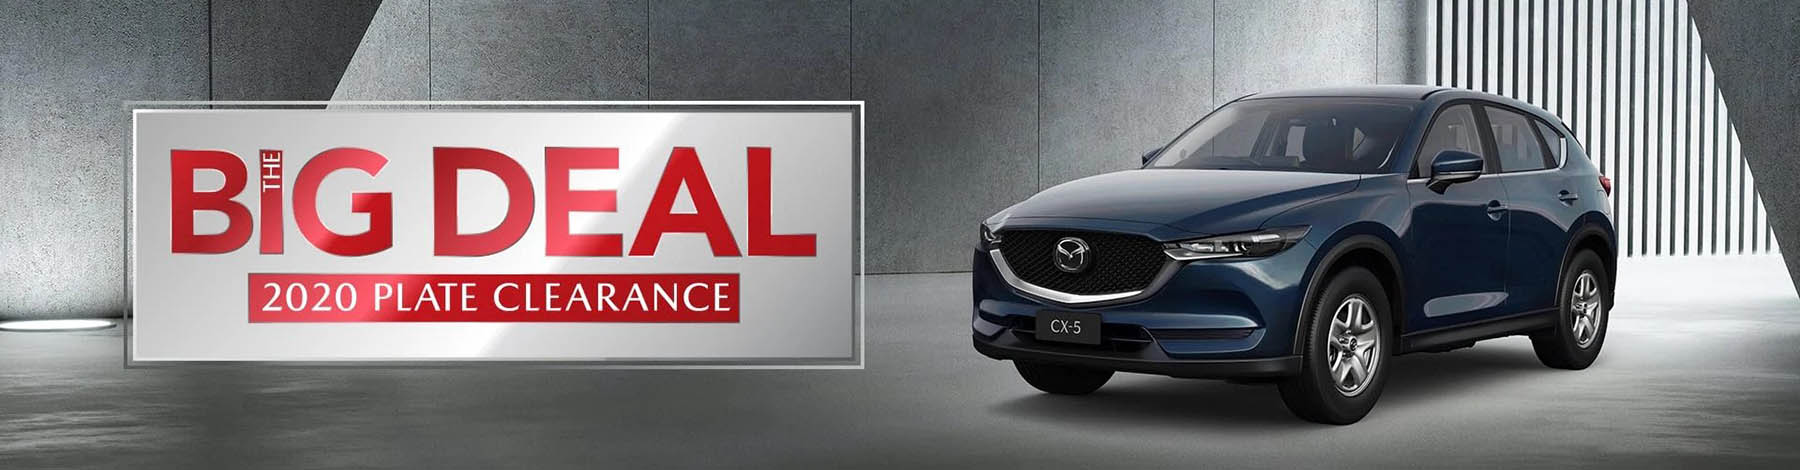 Mazda Special Offers The Big Deal 2020 Plate Clearance